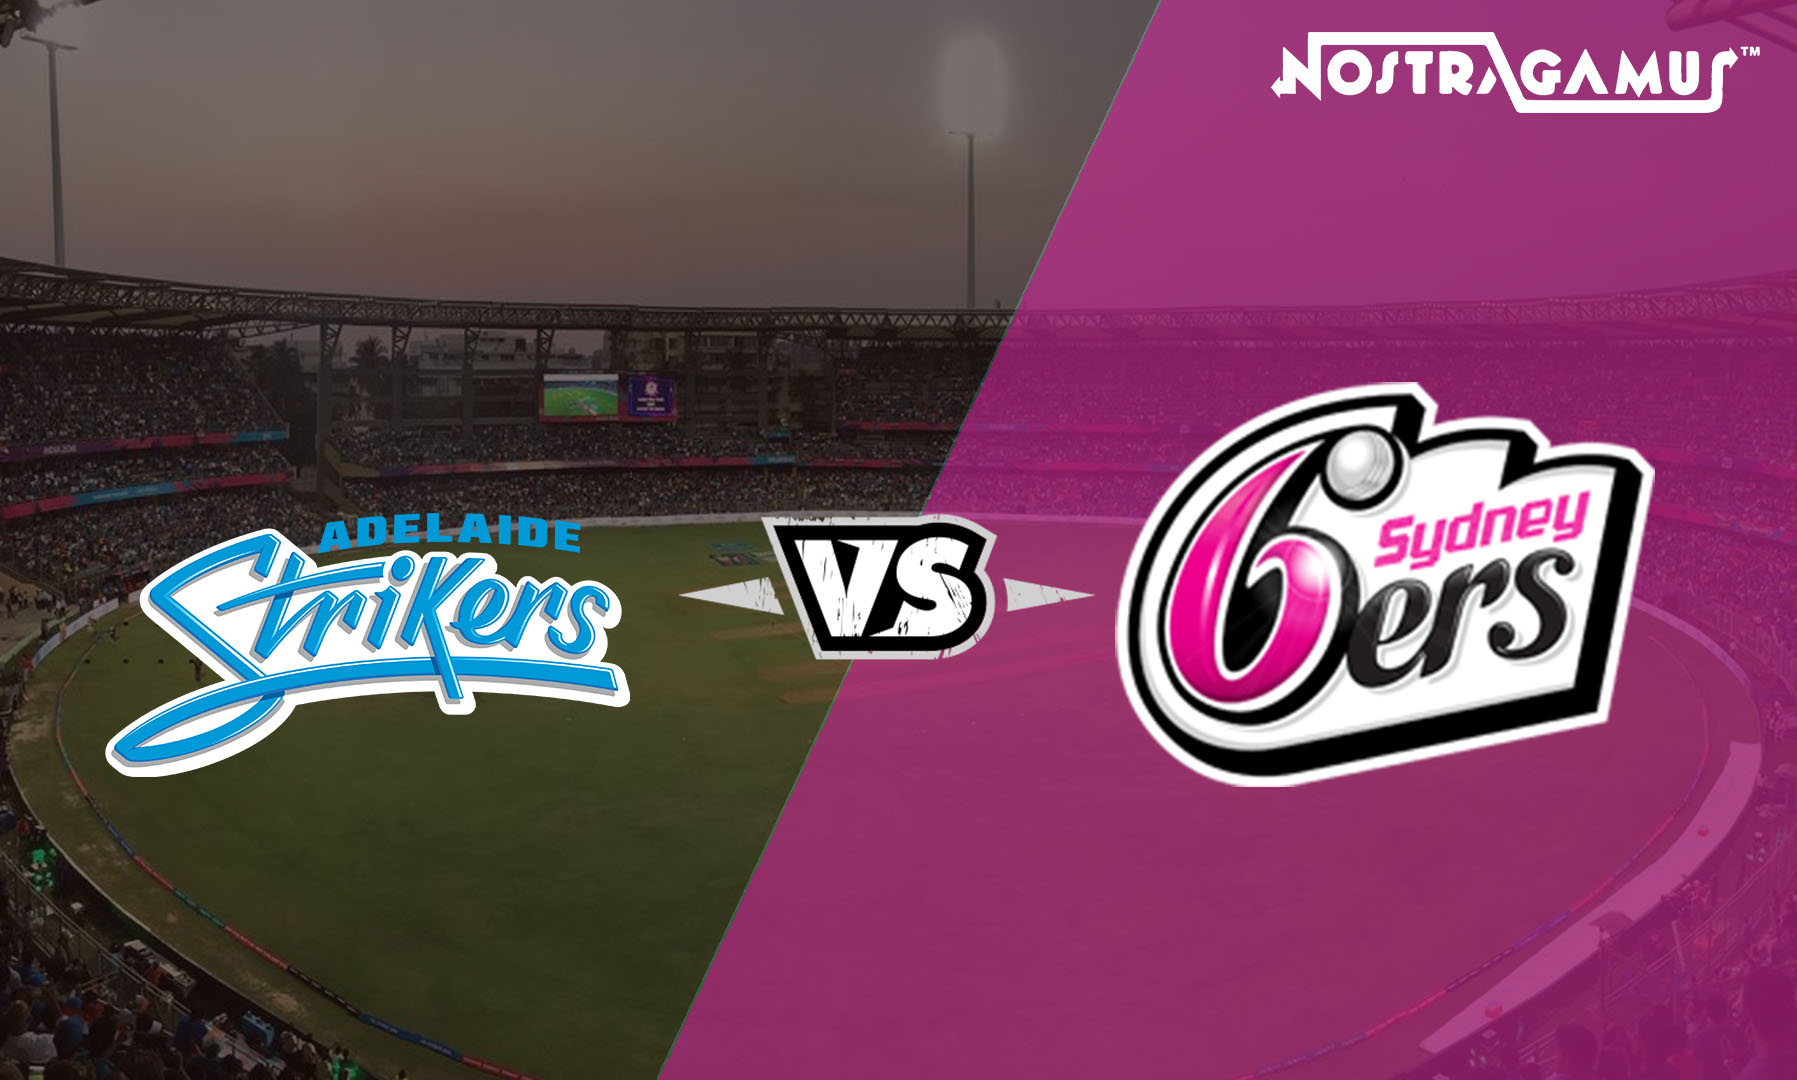 BBL 2019 Match Prediction: Adelaide Strikers vs Sydney Sixers